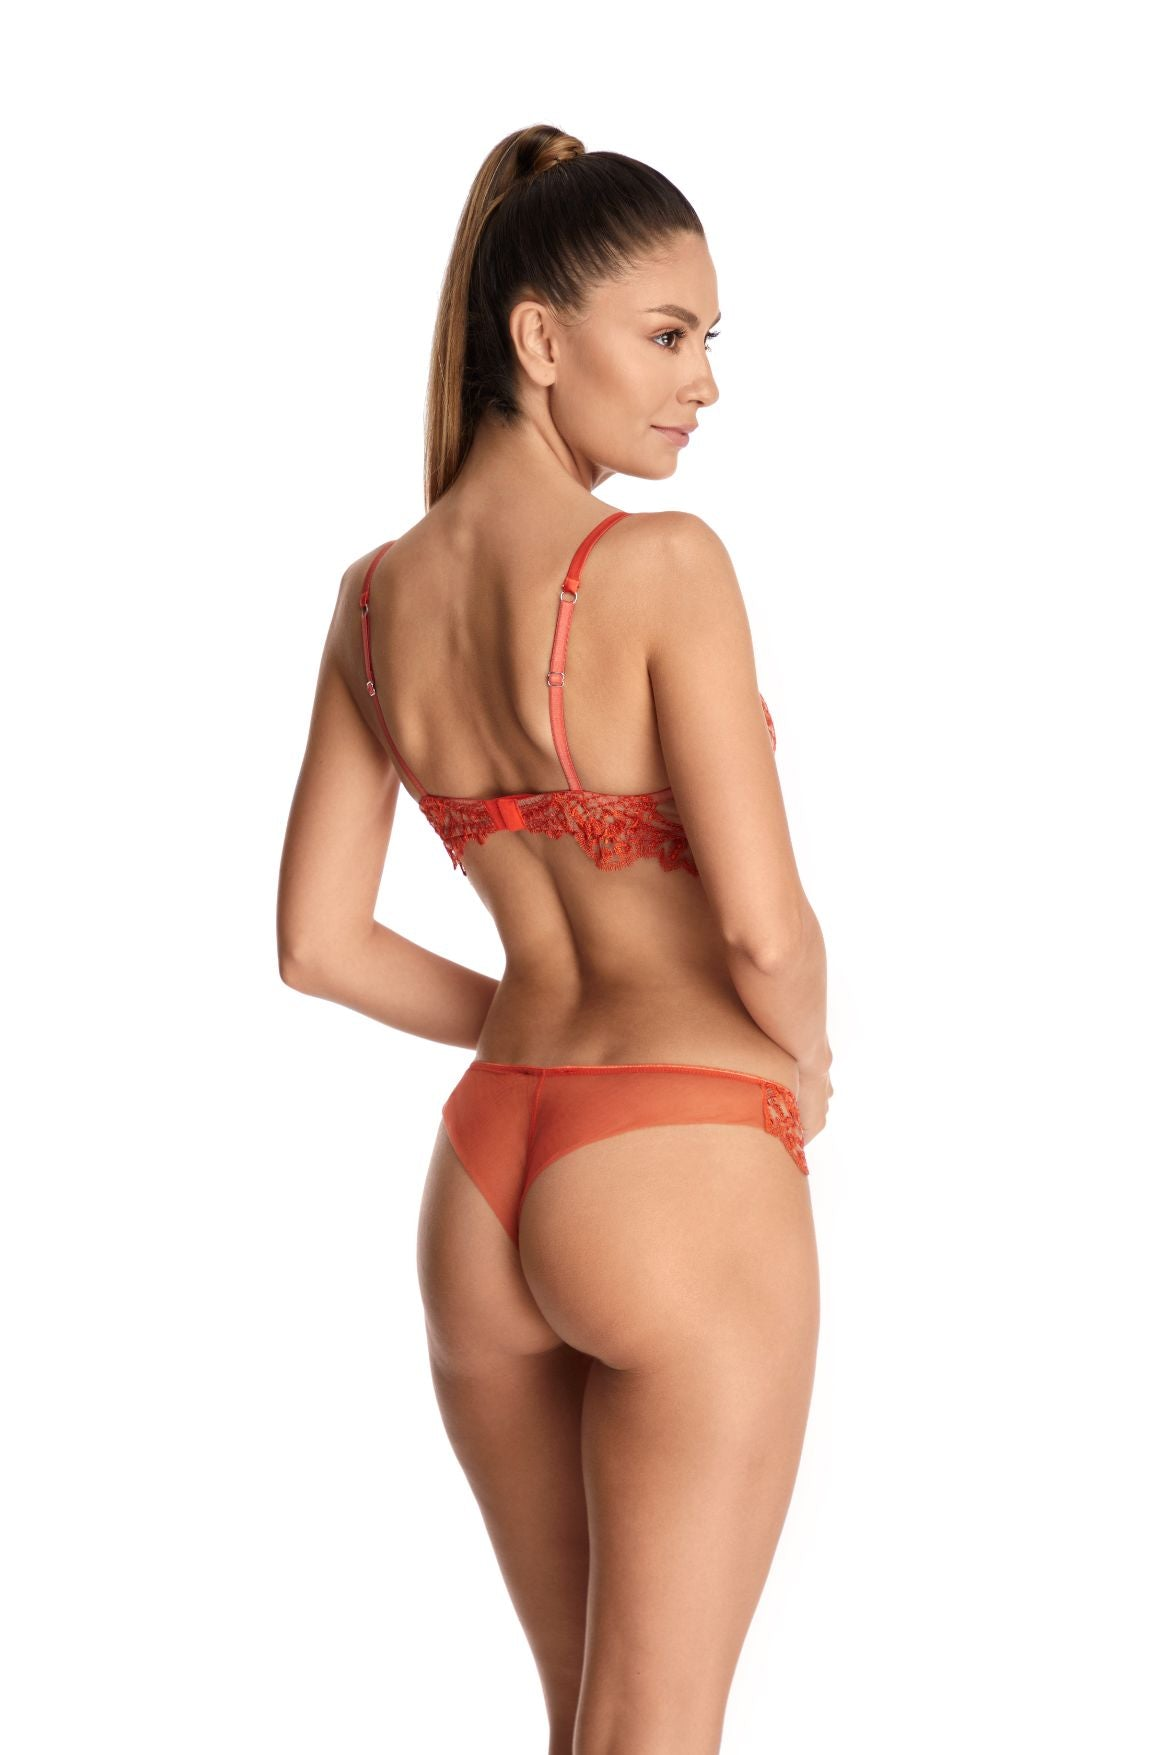 I.D. Sarrieri embroidered tulle orange underwired bra and thong